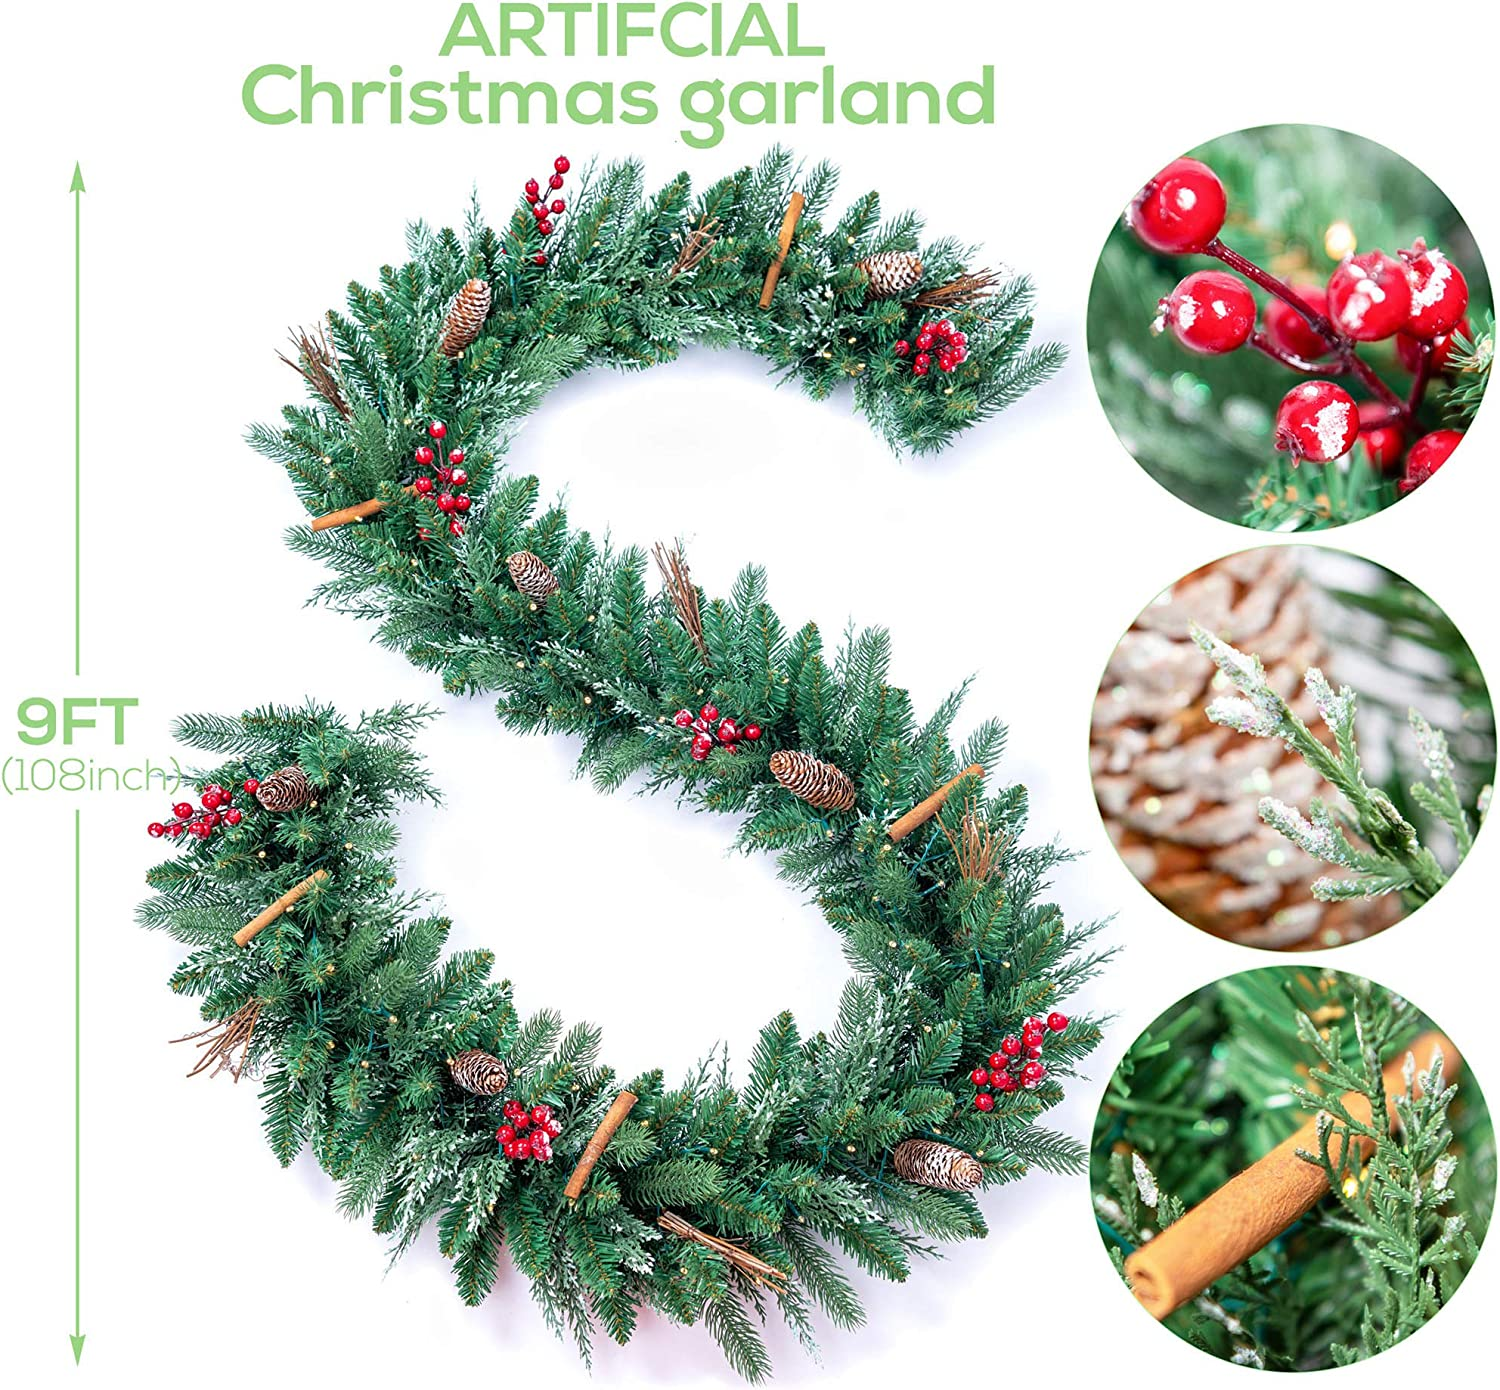 AMERZEST Pre-lit 24 Inch Decorative Christmas Wreath with Flocked Red Berries,Cinnamon Stick,Colorful Glitter Pine Cone and 50 Battery Operated Soft White LED Lights with Timer